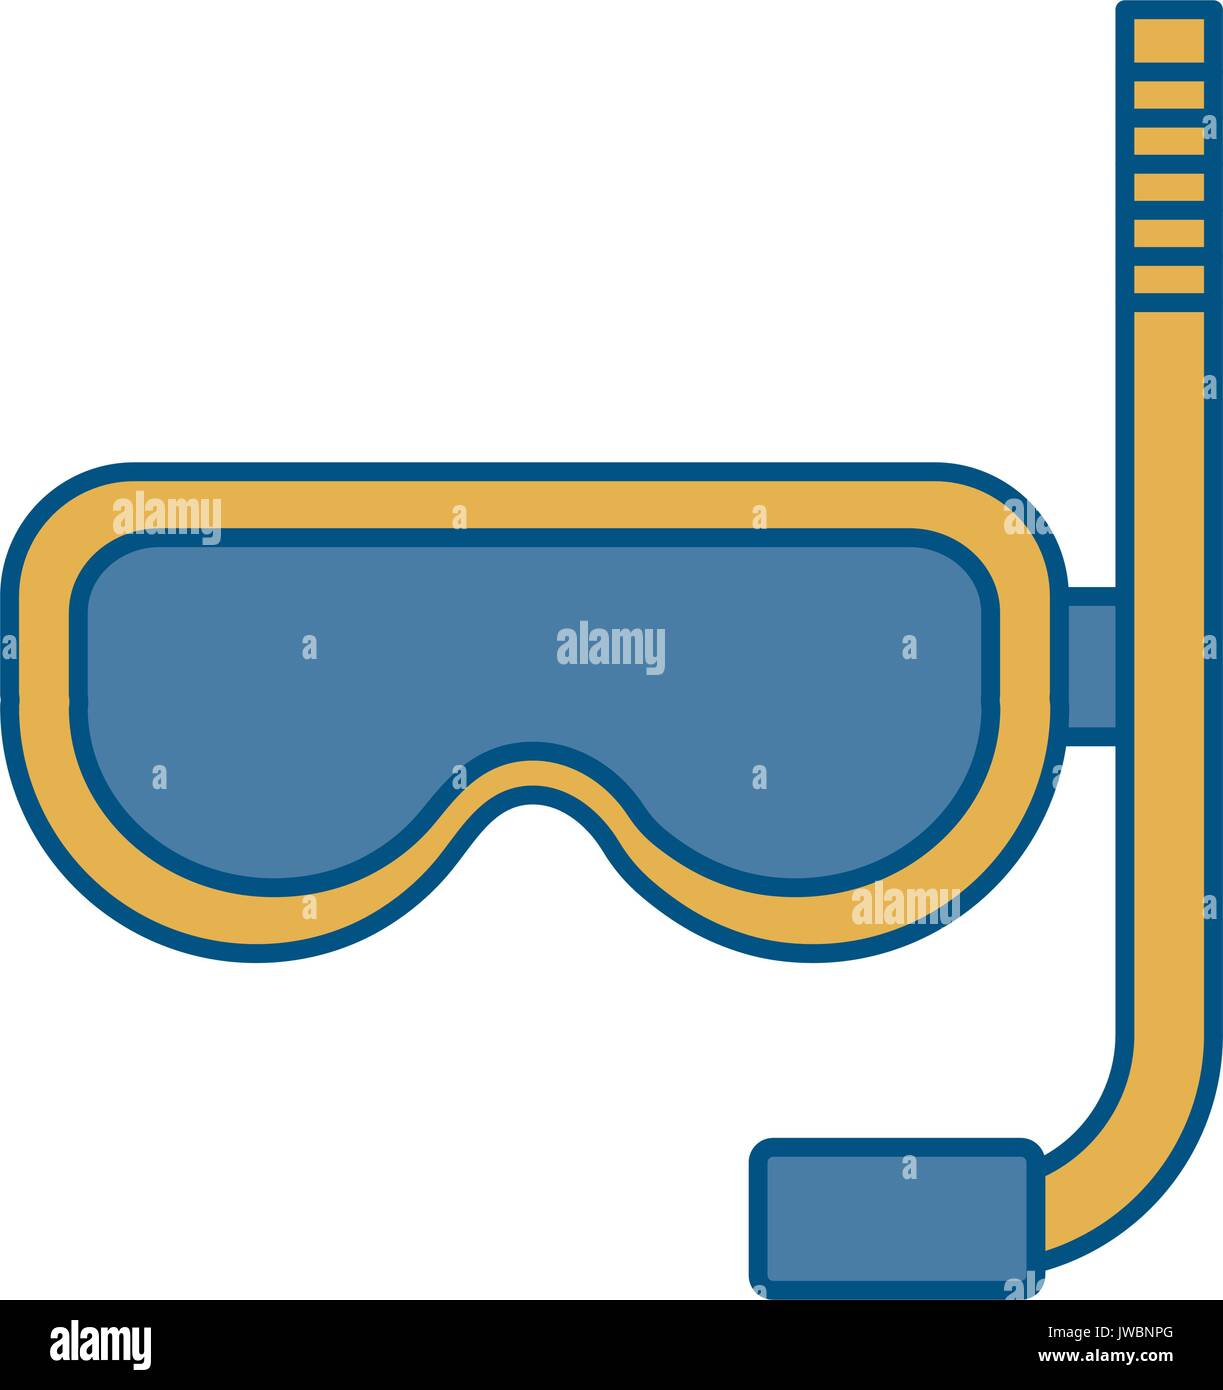 Snorkel mask design - Stock Vector